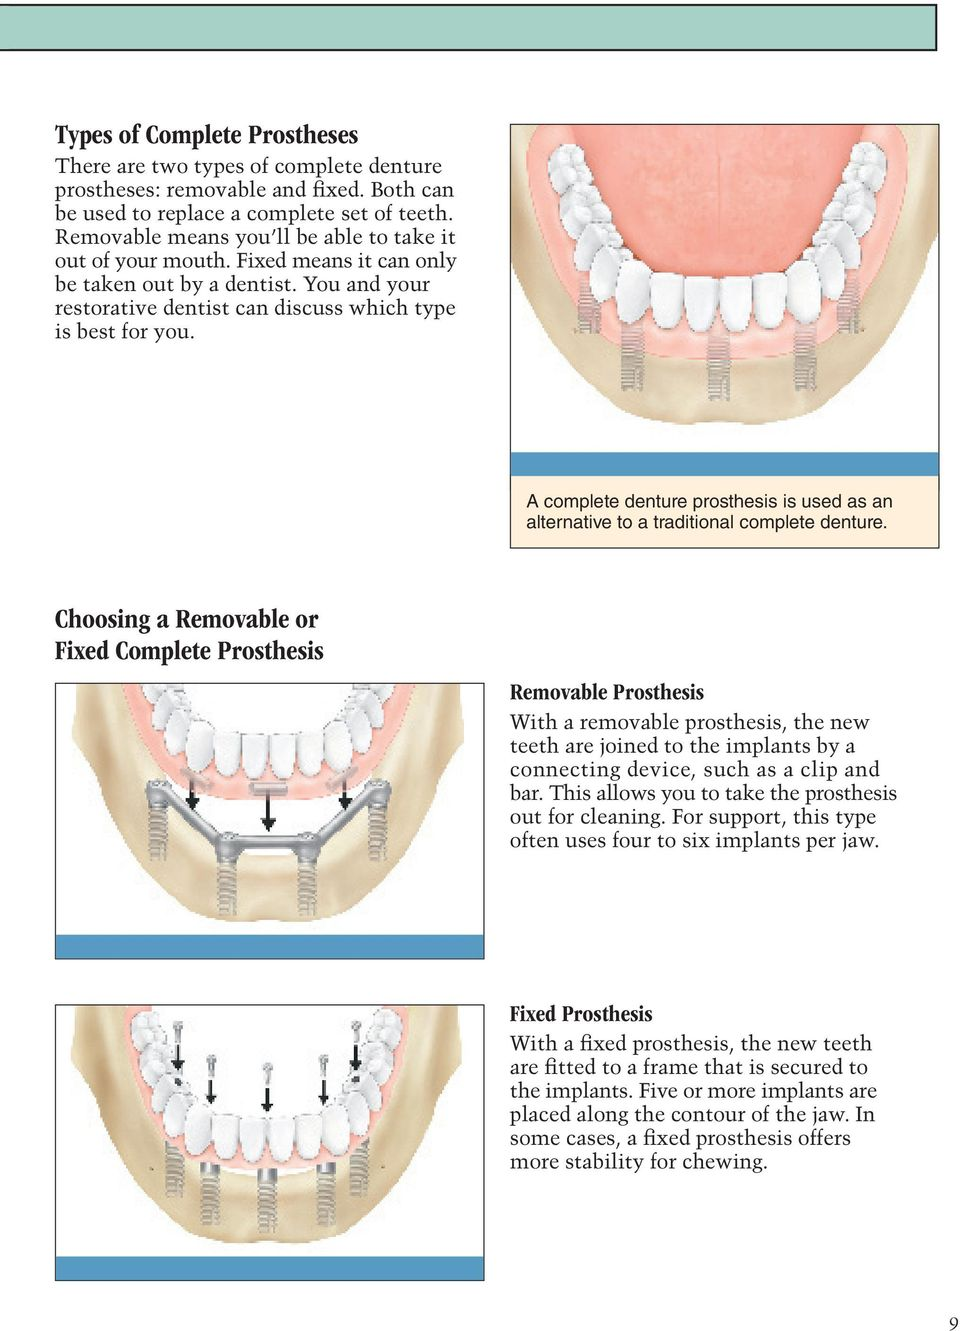 A complete denture prosthesis is used as an alternative to a traditional complete denture.